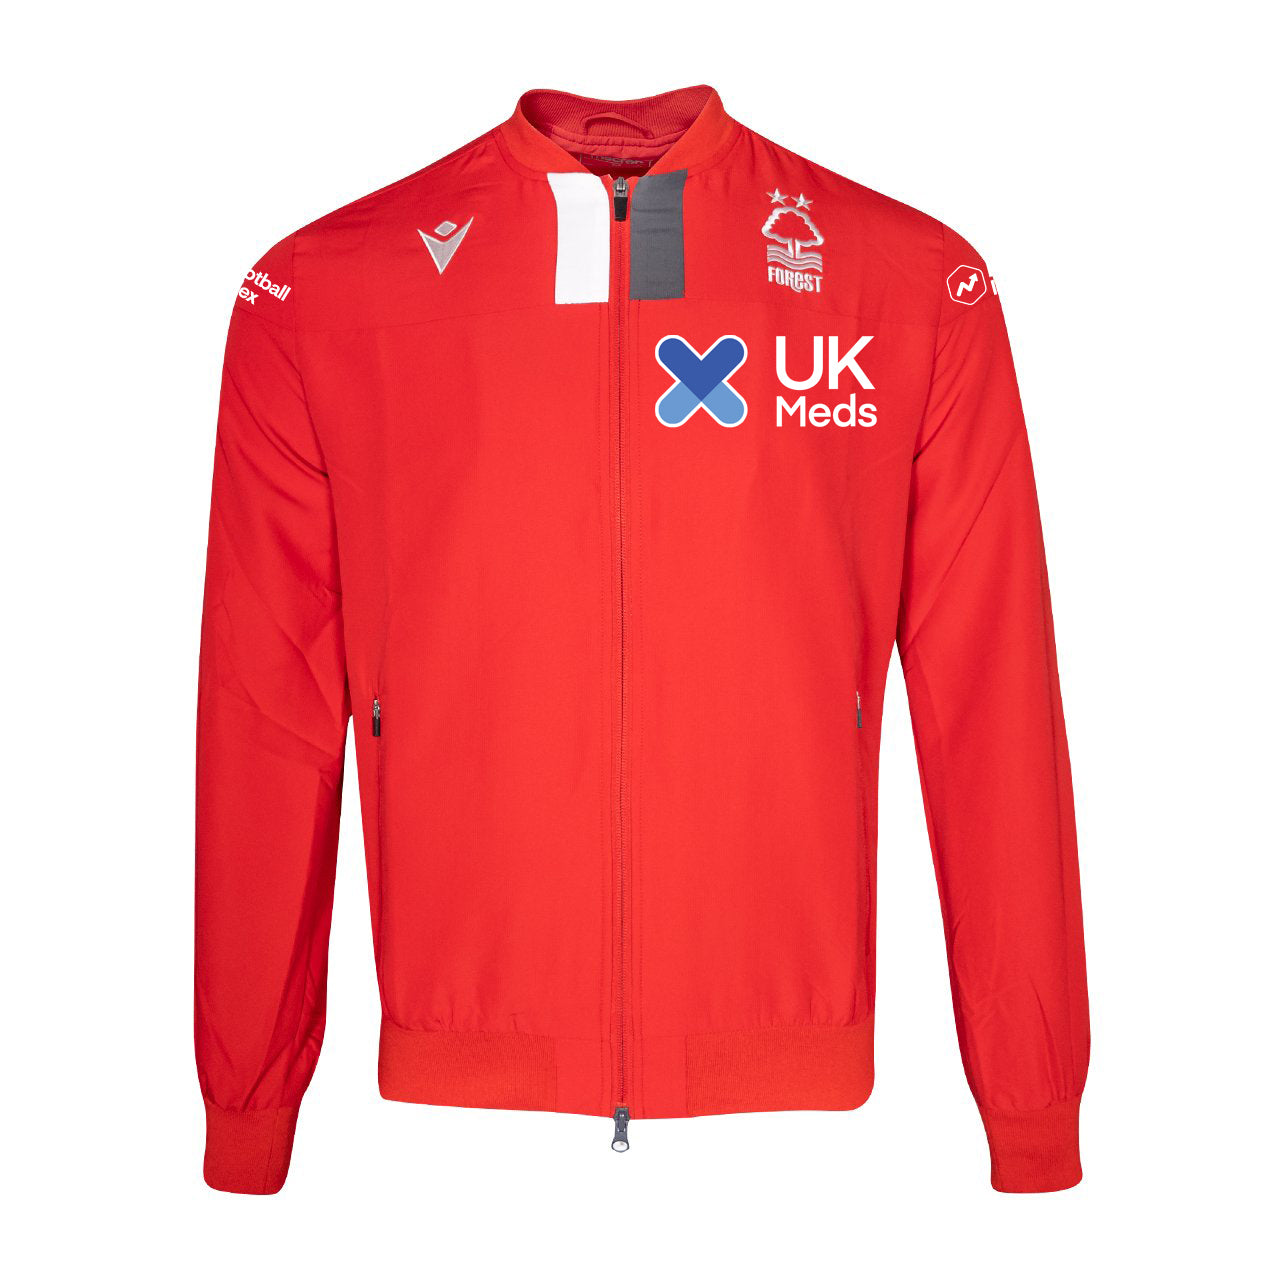 NFFC Mens Red Player Full Zip Training Top (Sponsored)